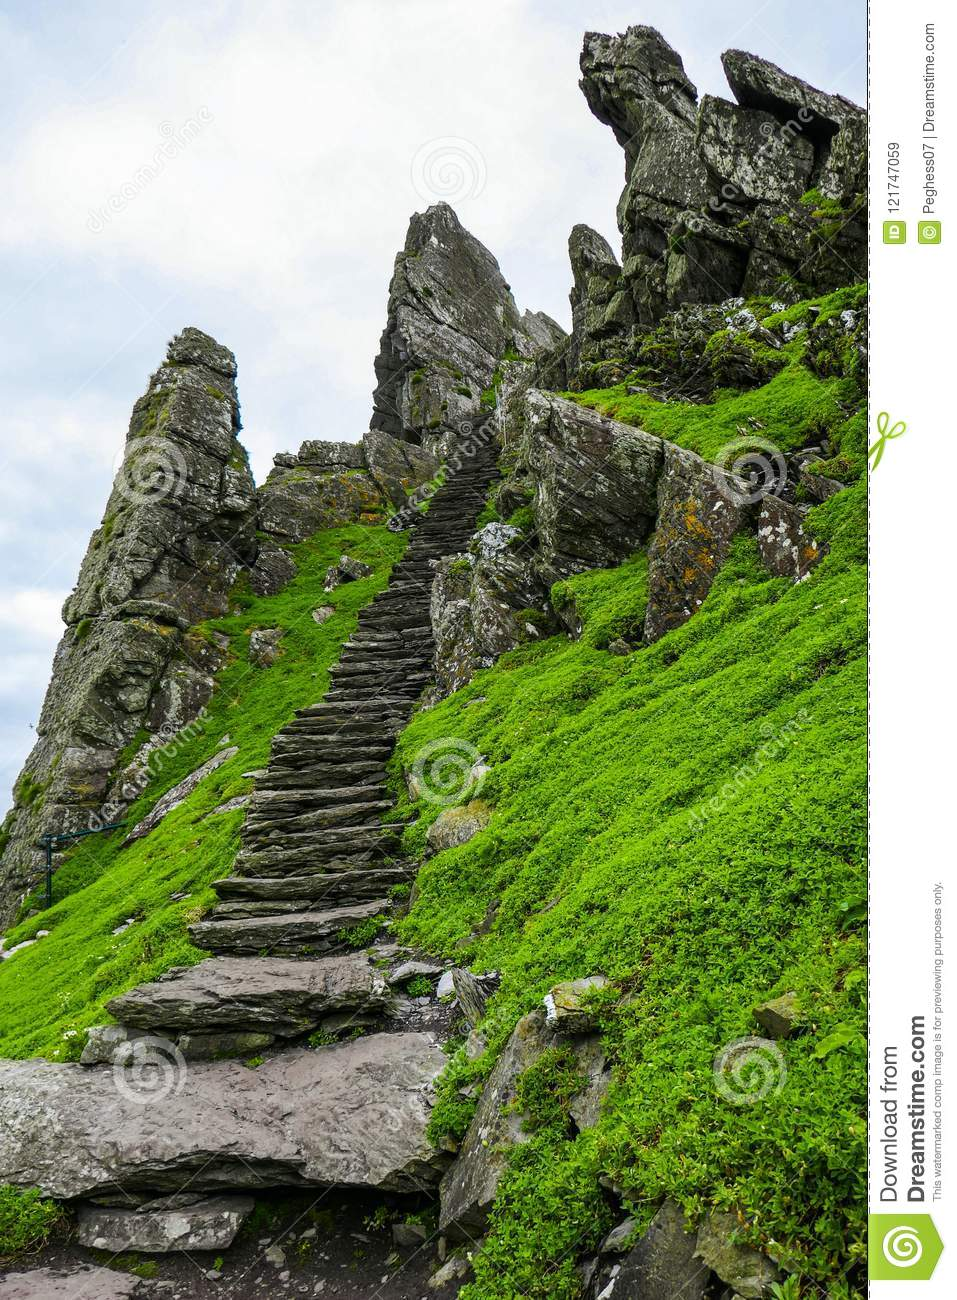 First of 600 steps ascending to Skellig Michael, well-preserved ancient Irish Christian monastery.